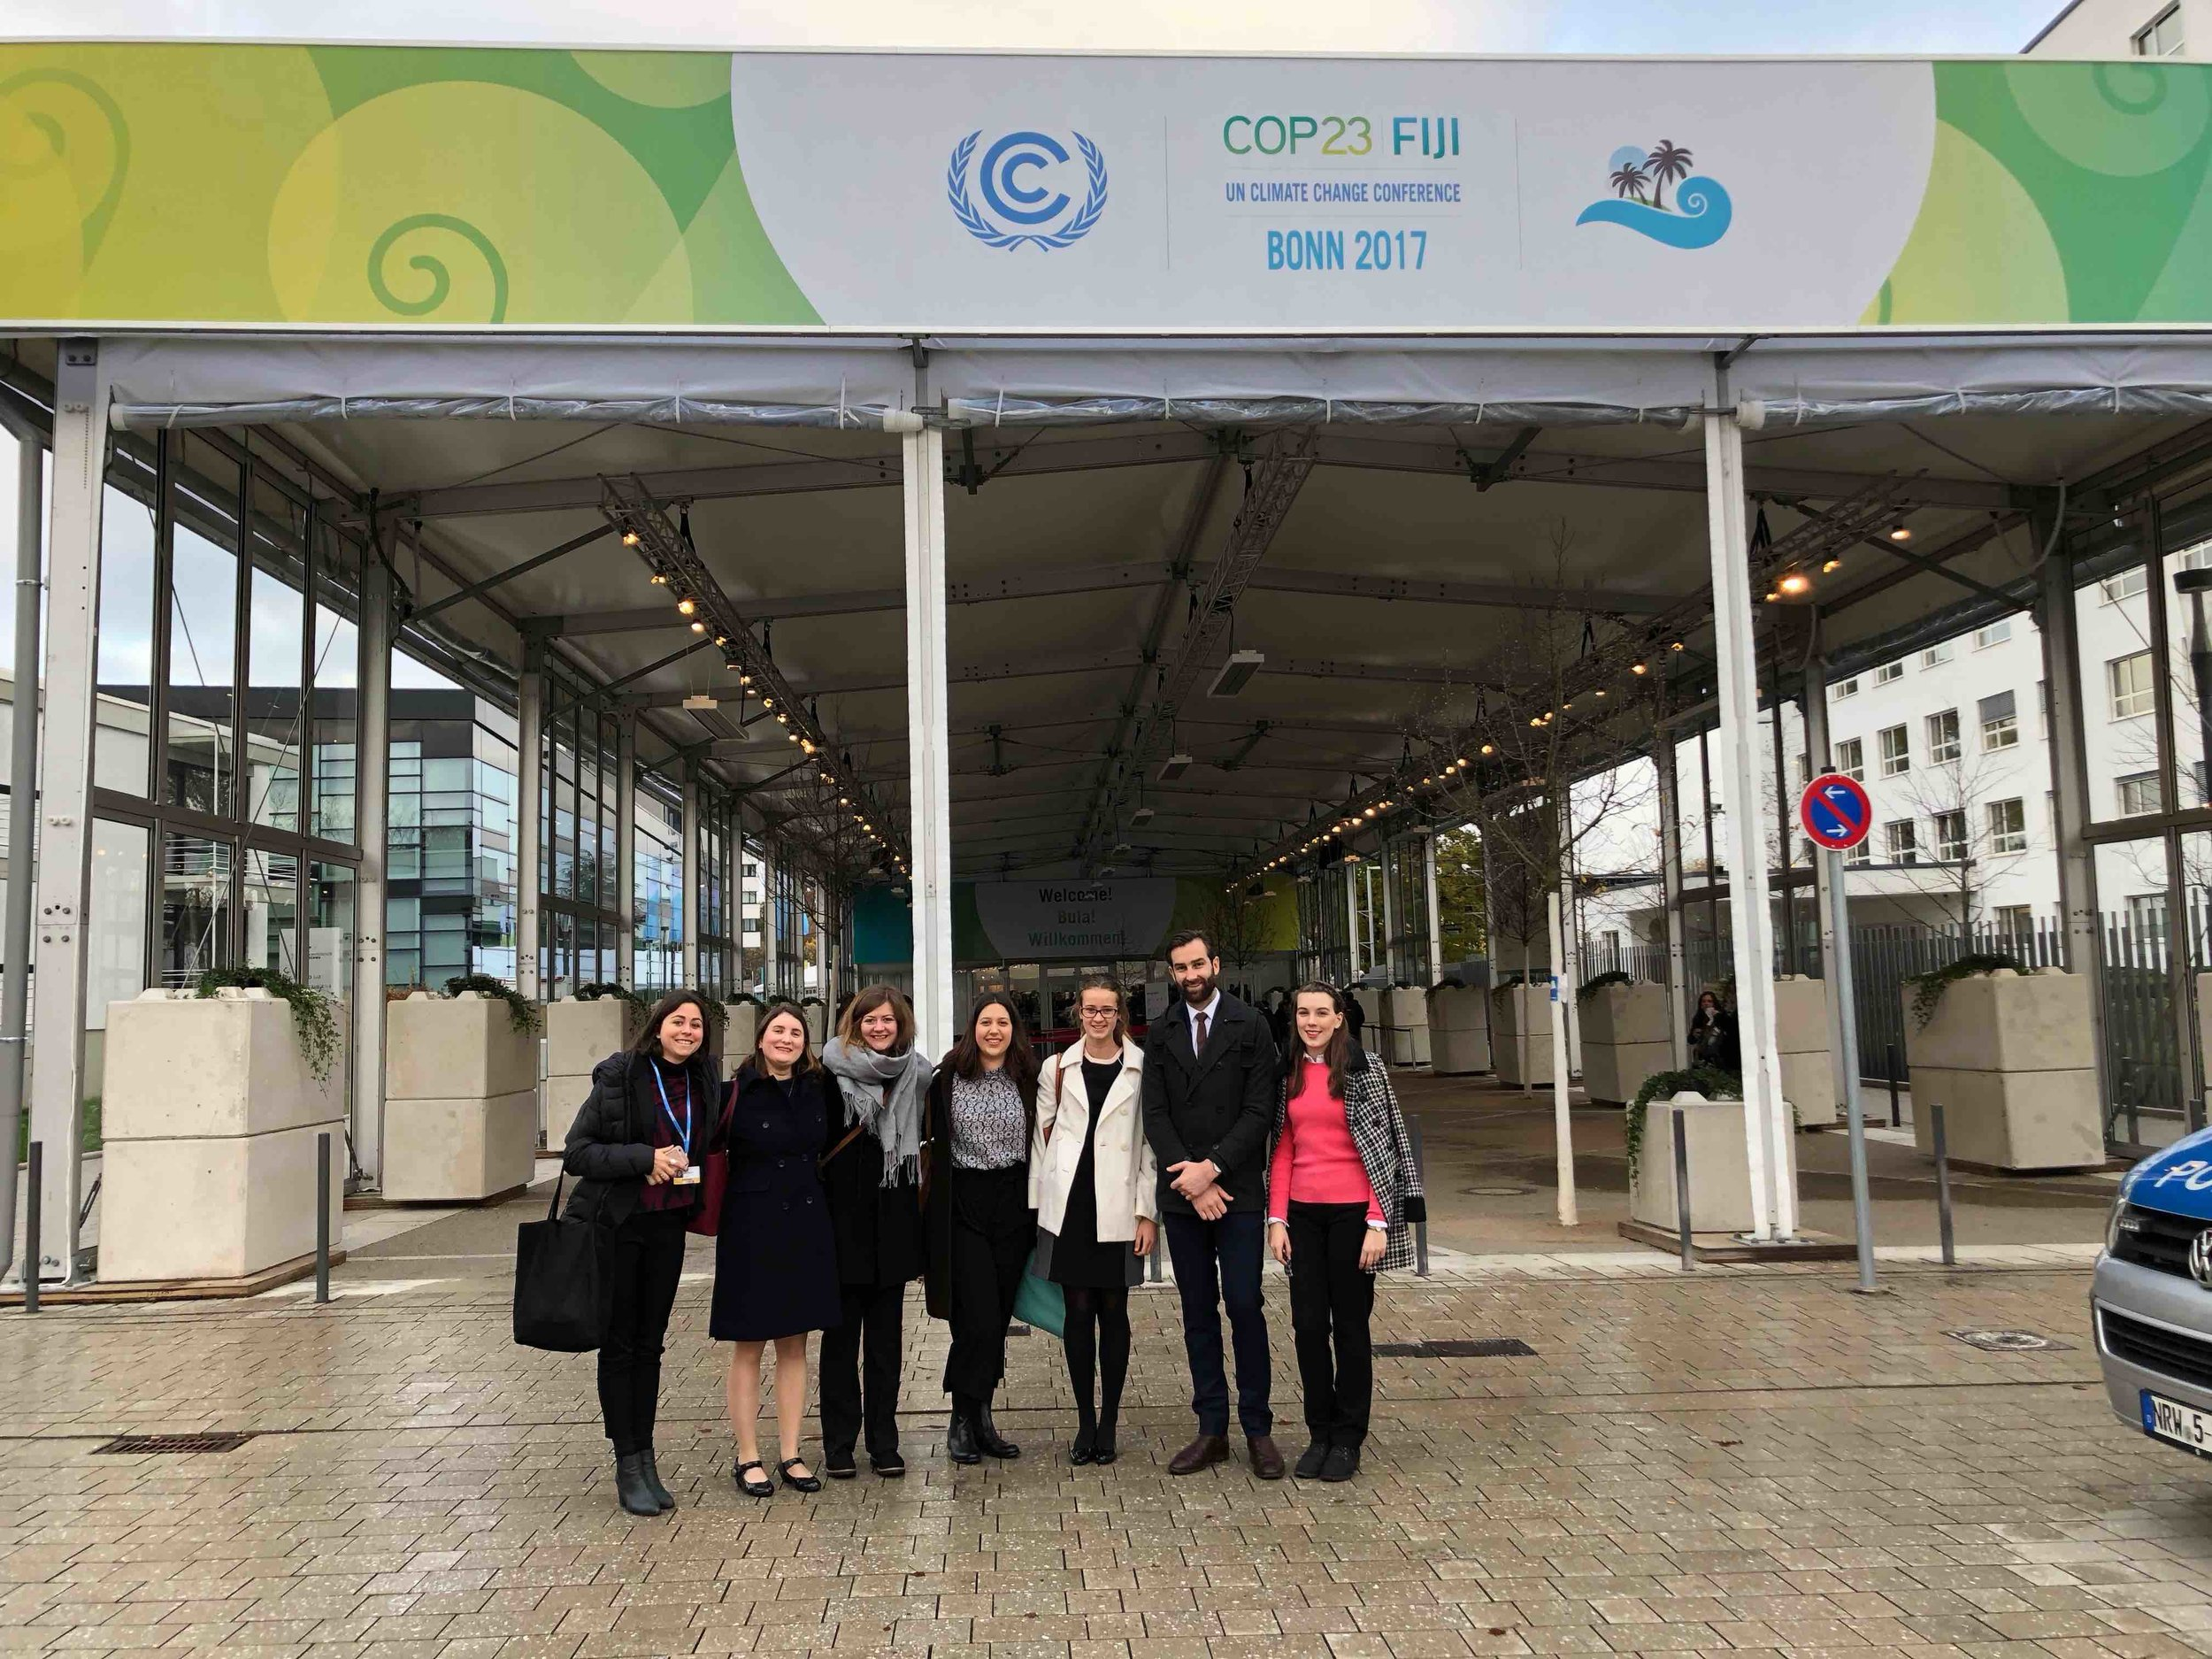 The delegates arrive at the COP23 in Bonn, Germany